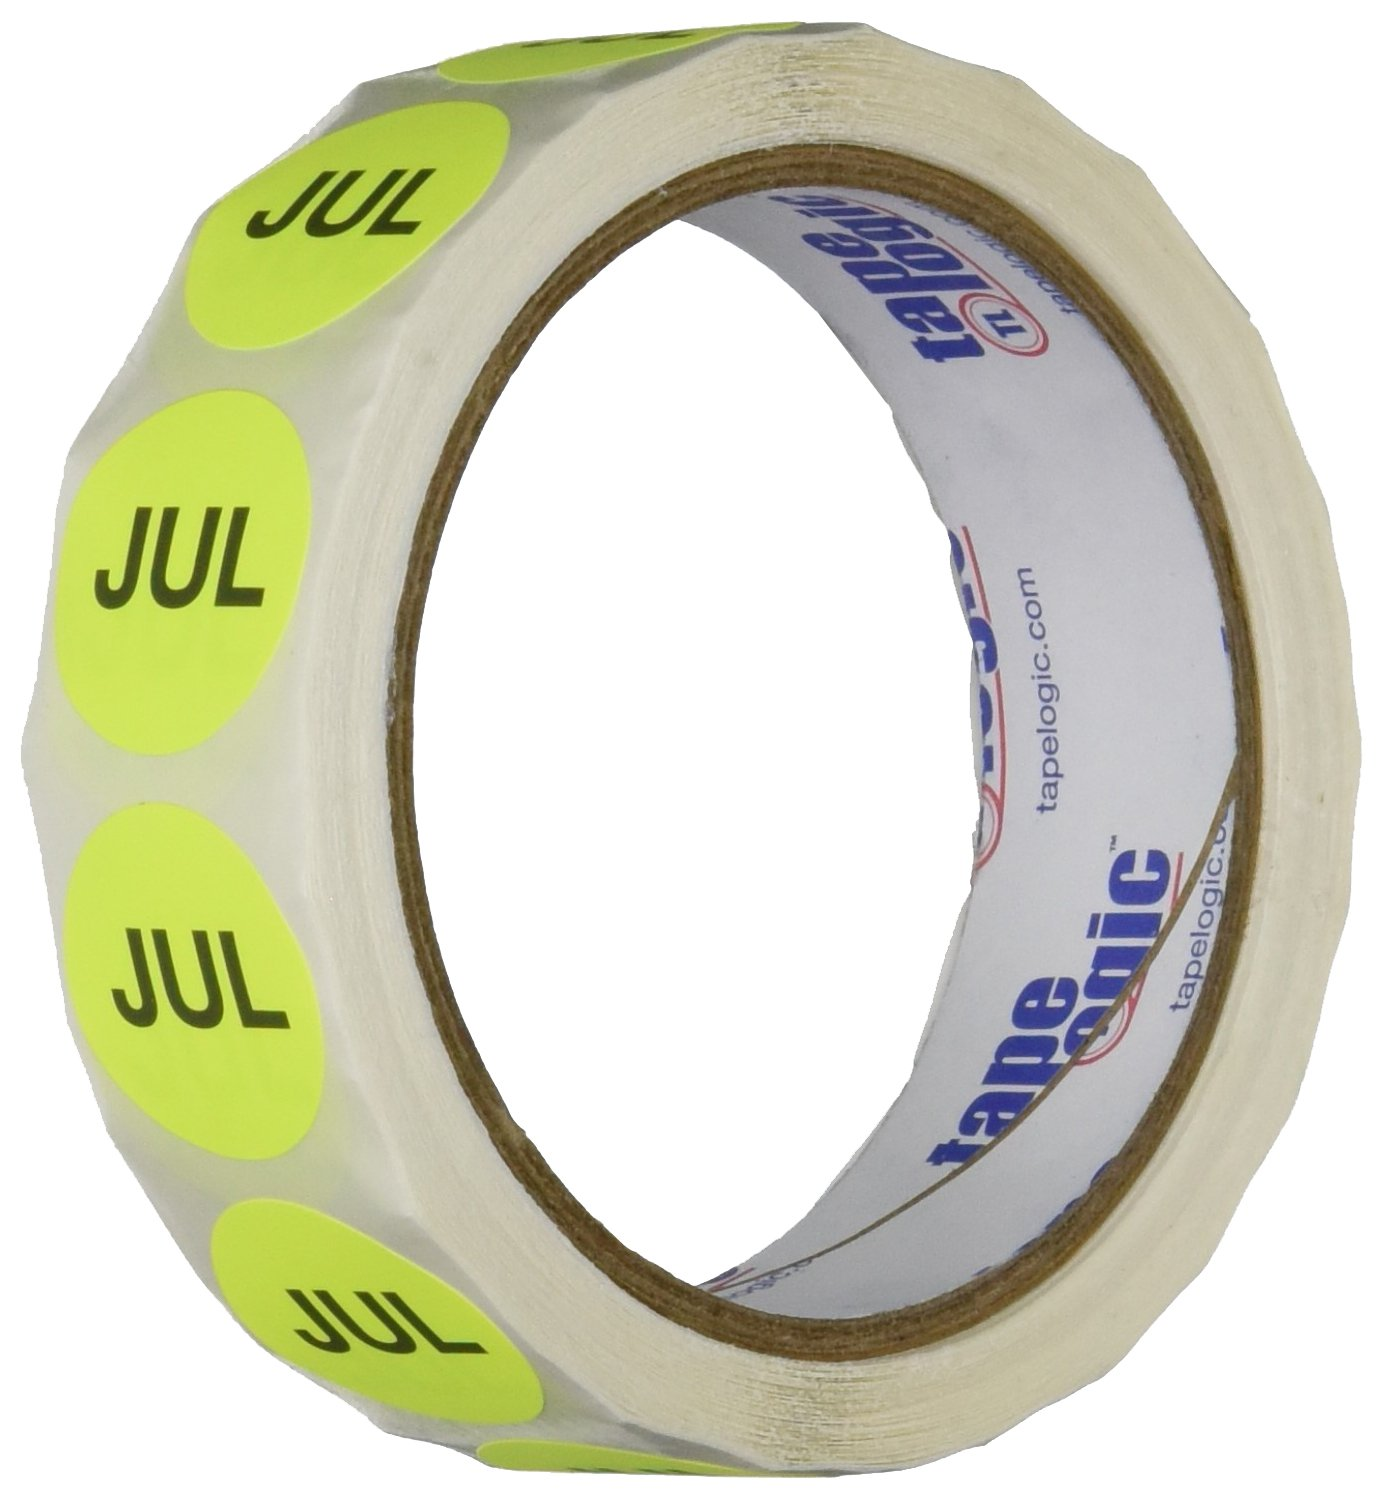 Pack of 500 Pack of 500 1 Width 1 Height 4 Length 1 Width RetailSource Ltd Fluorescent Yellow Months of the Year Labels 1 Height RetailSource DL6729x1 1 Circle -JUL, 4 Length